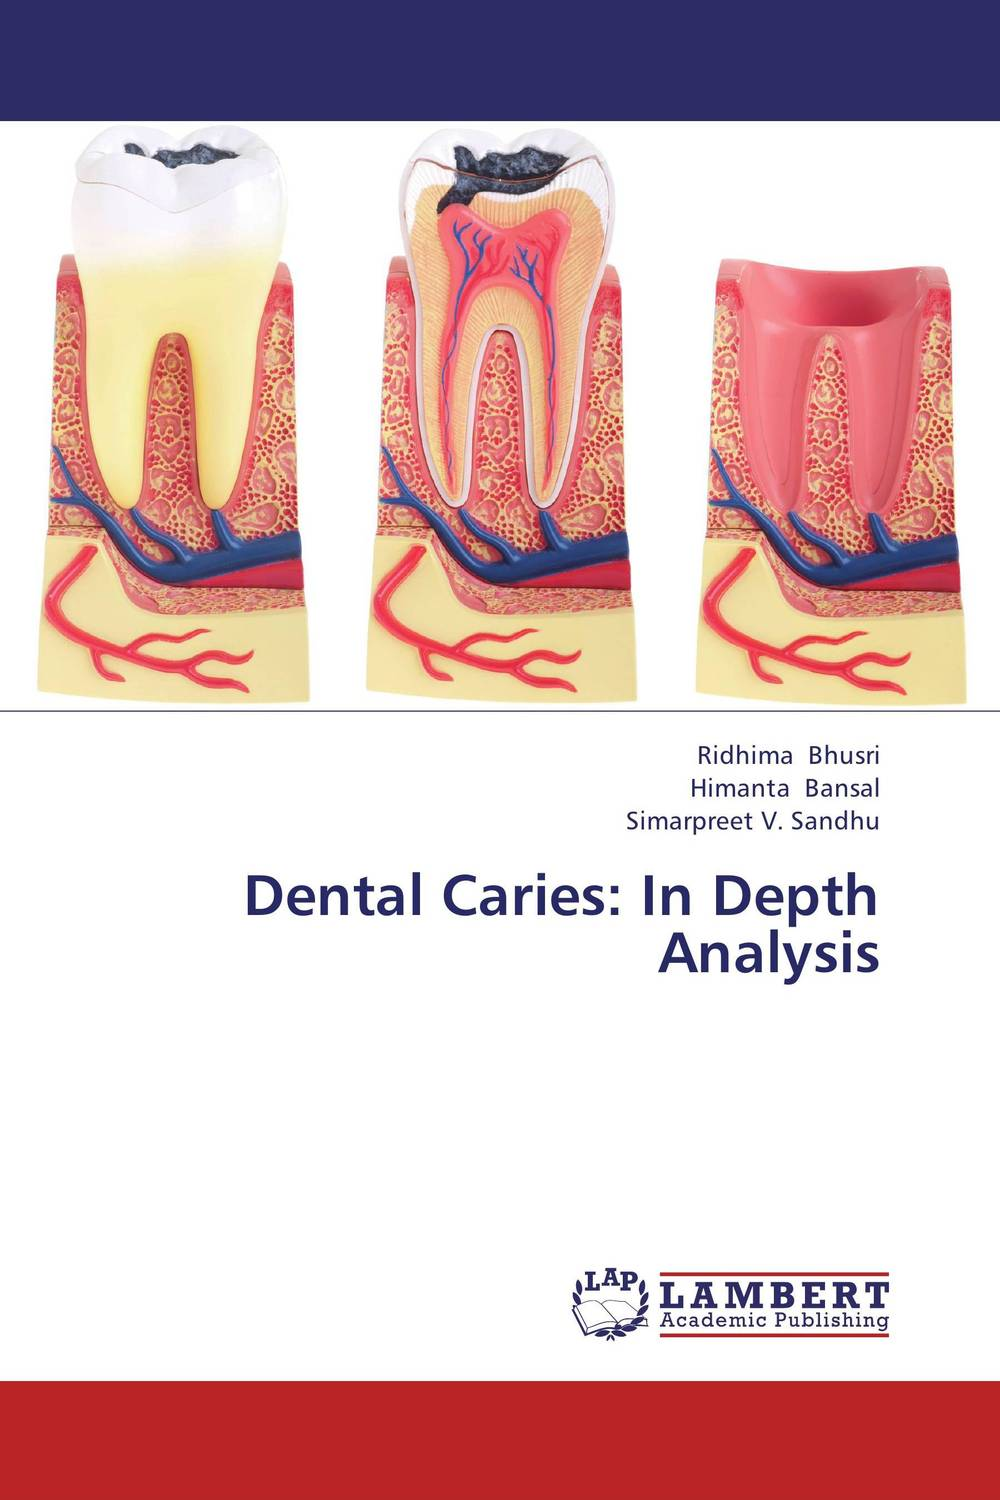 Dental Caries: In Depth Analysis new arrival dental all teeth removable standard teeth tooth model 28 pcs teeth student learning model